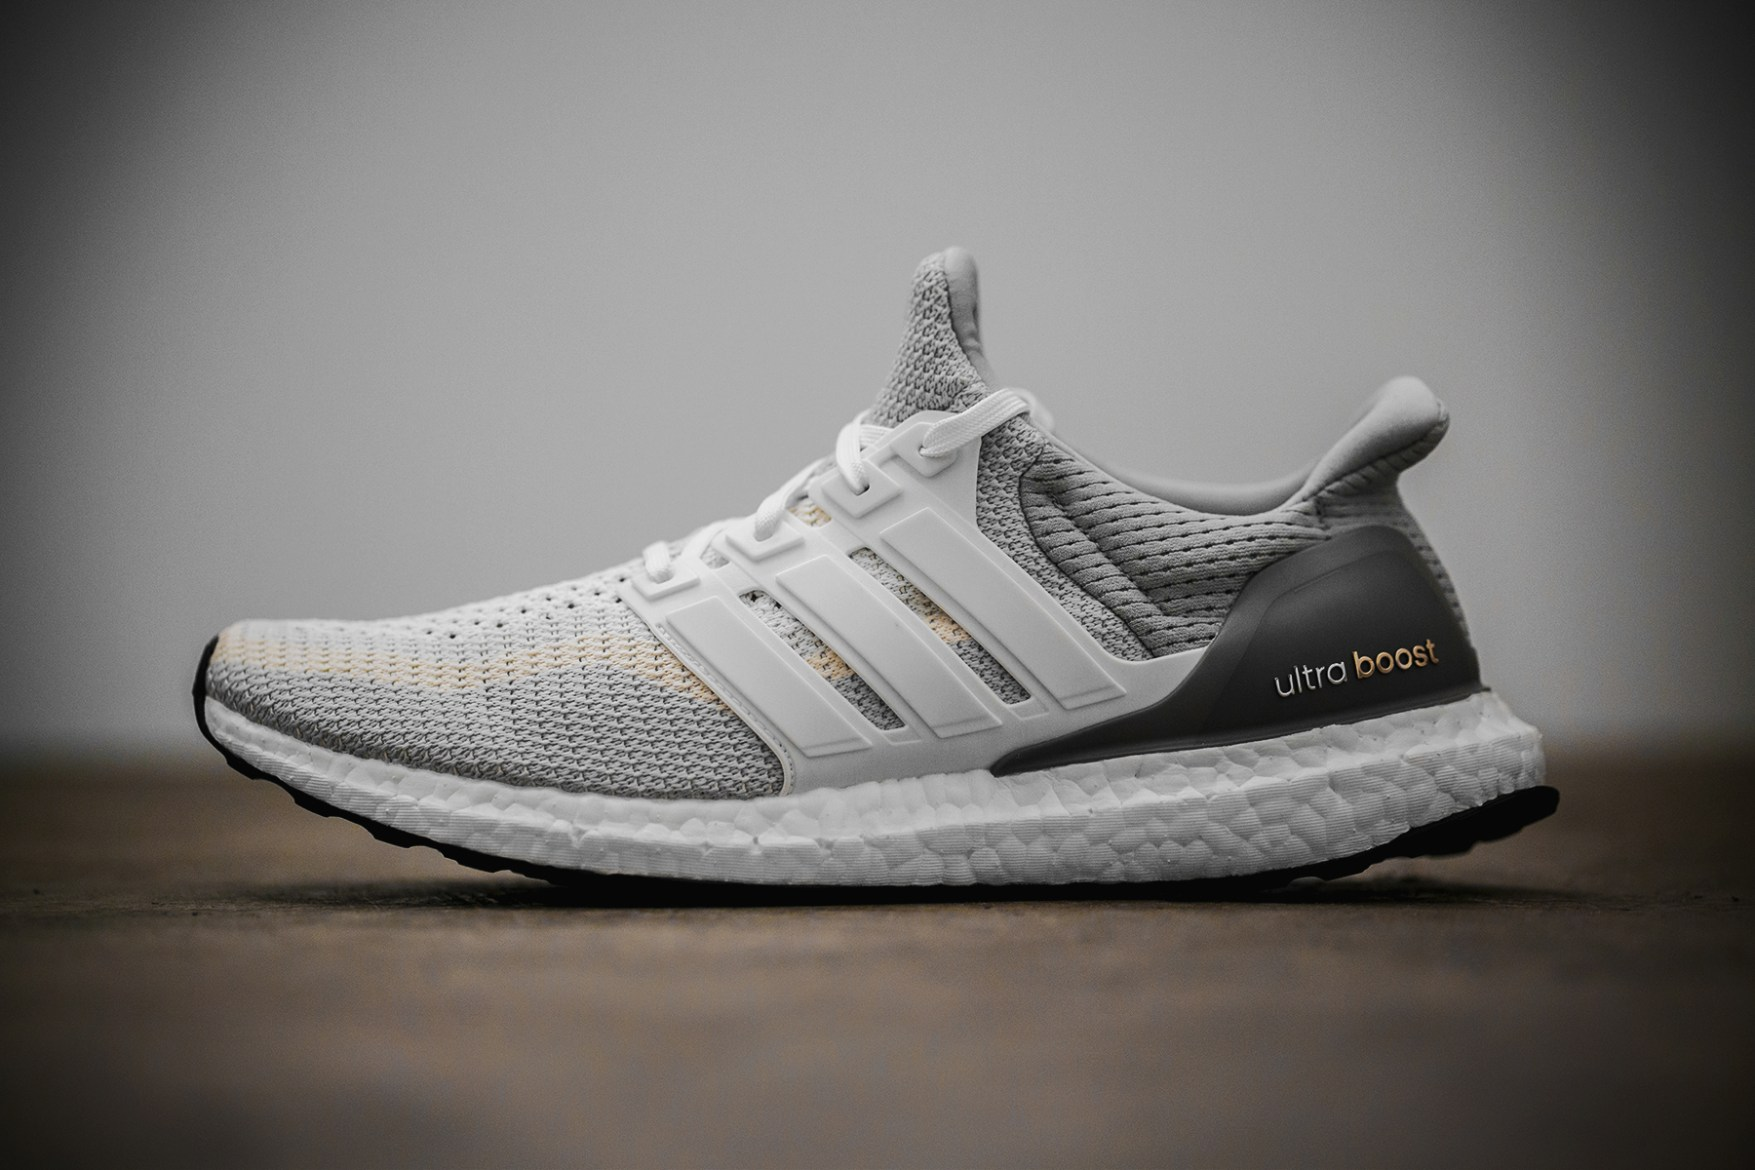 71f45263d328f closeout adidas ultra boost grey and maroon 346f3 1a6c5